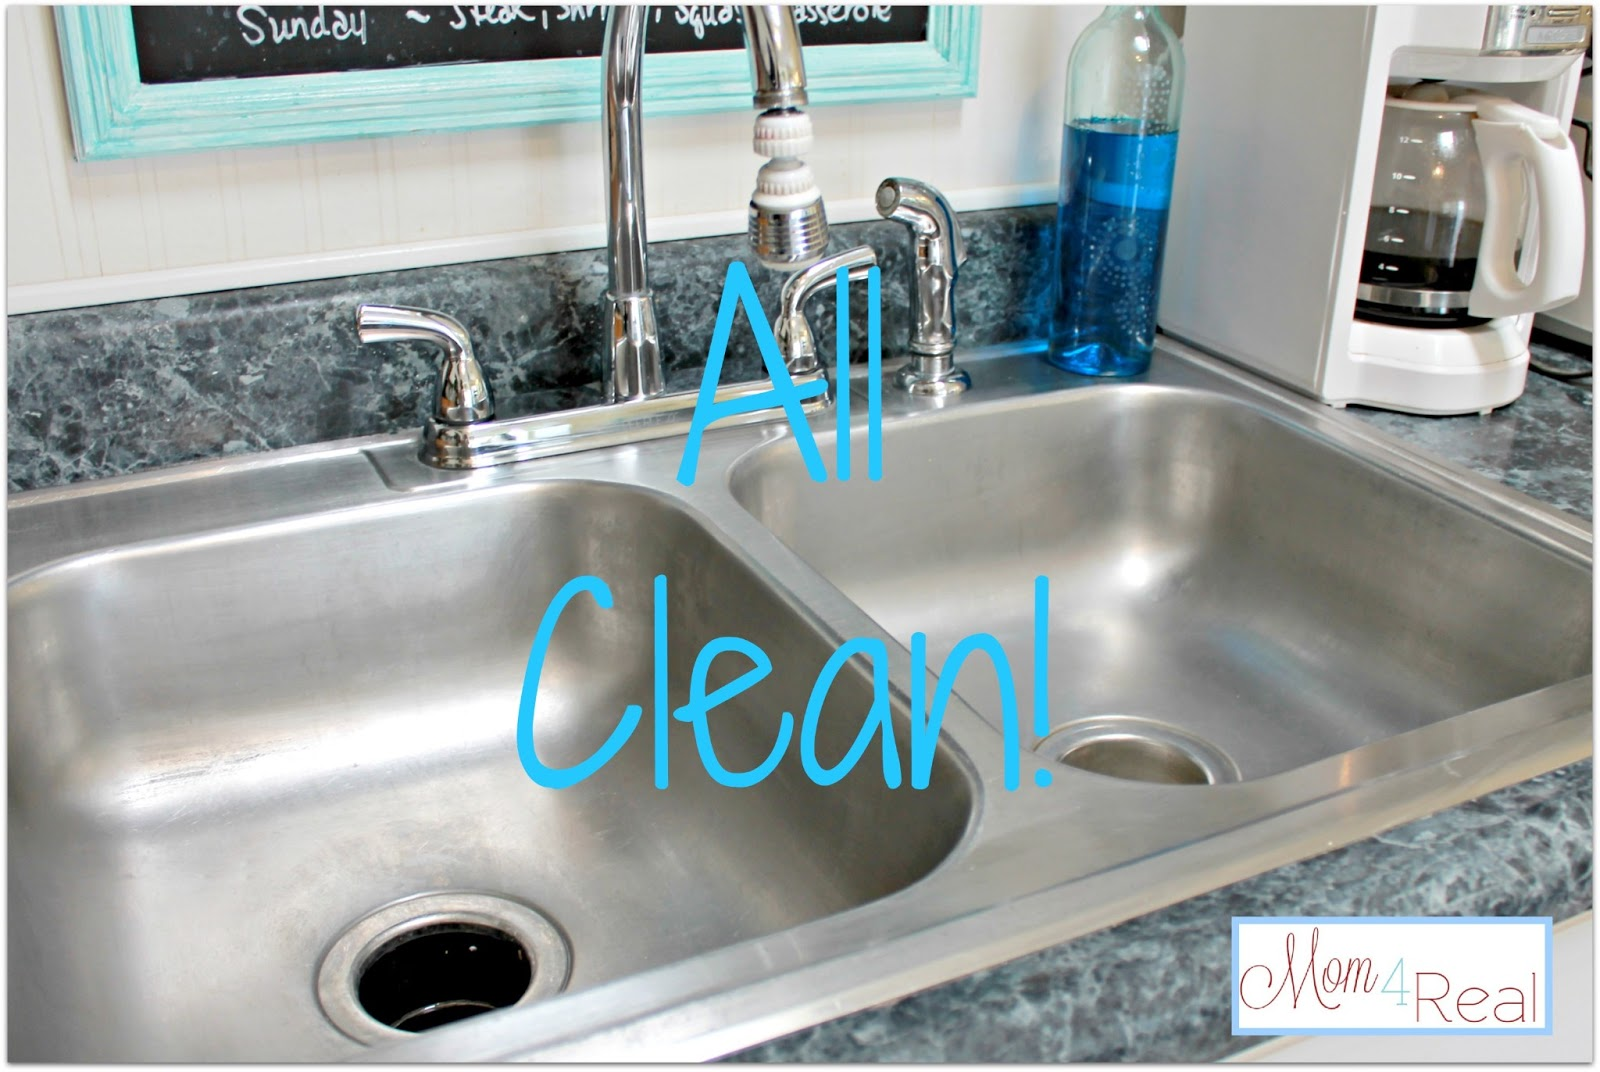 How To Clean Your Stainless Steel Kitchen Sink - Mom 4 Real